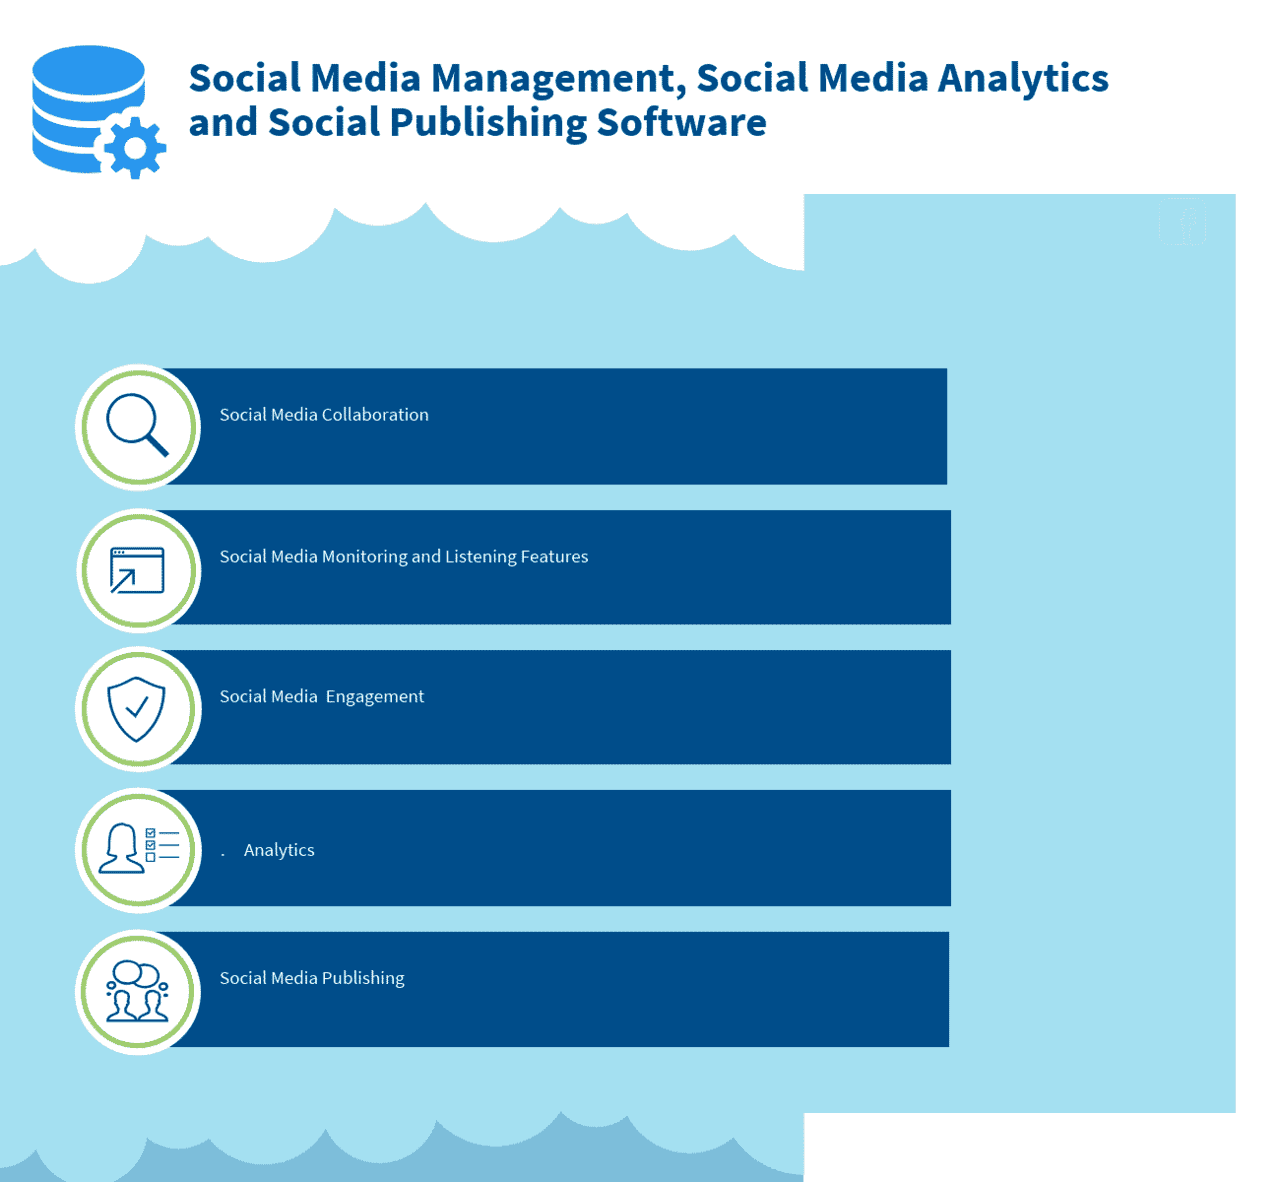 Free Social Media Management, Social Media Analytics and Social Publishing Software